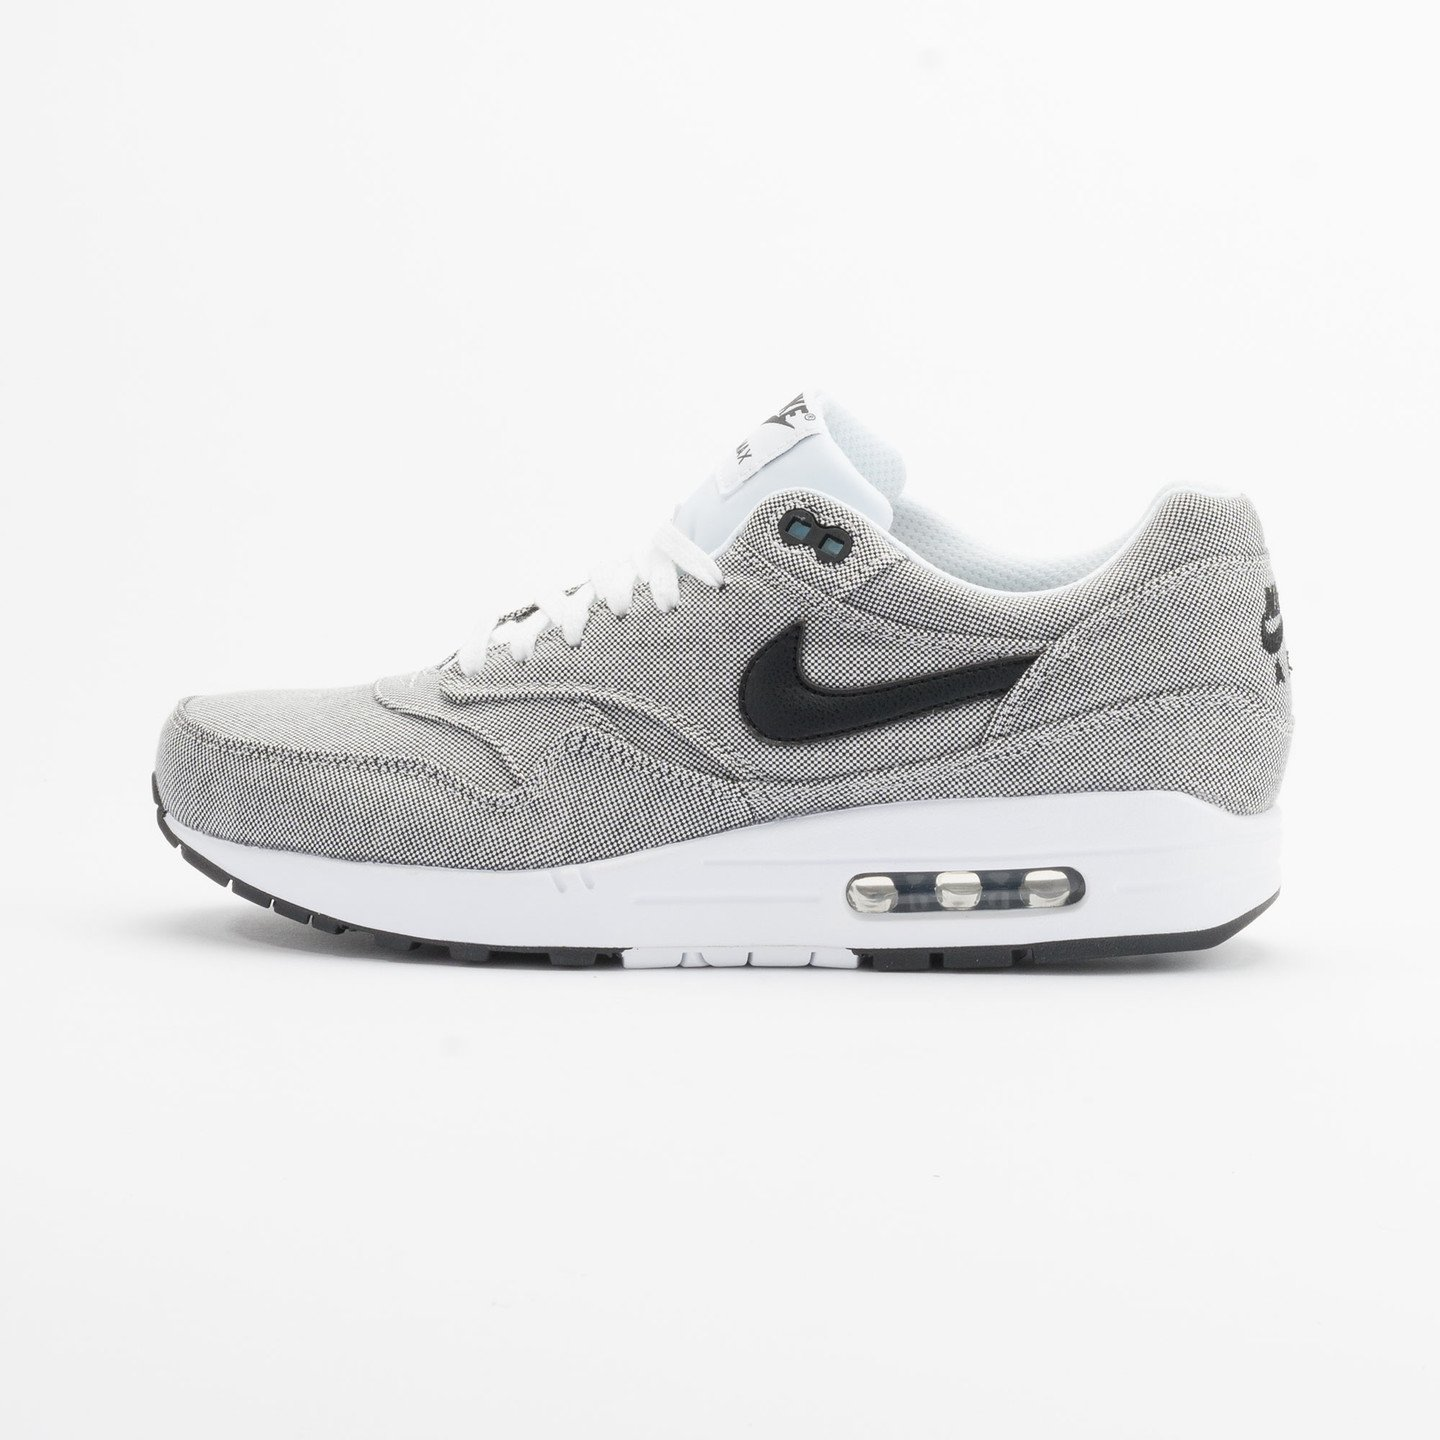 Nike Air Max 1 Prm Picknick Pack Black/White 512033-103-40.5